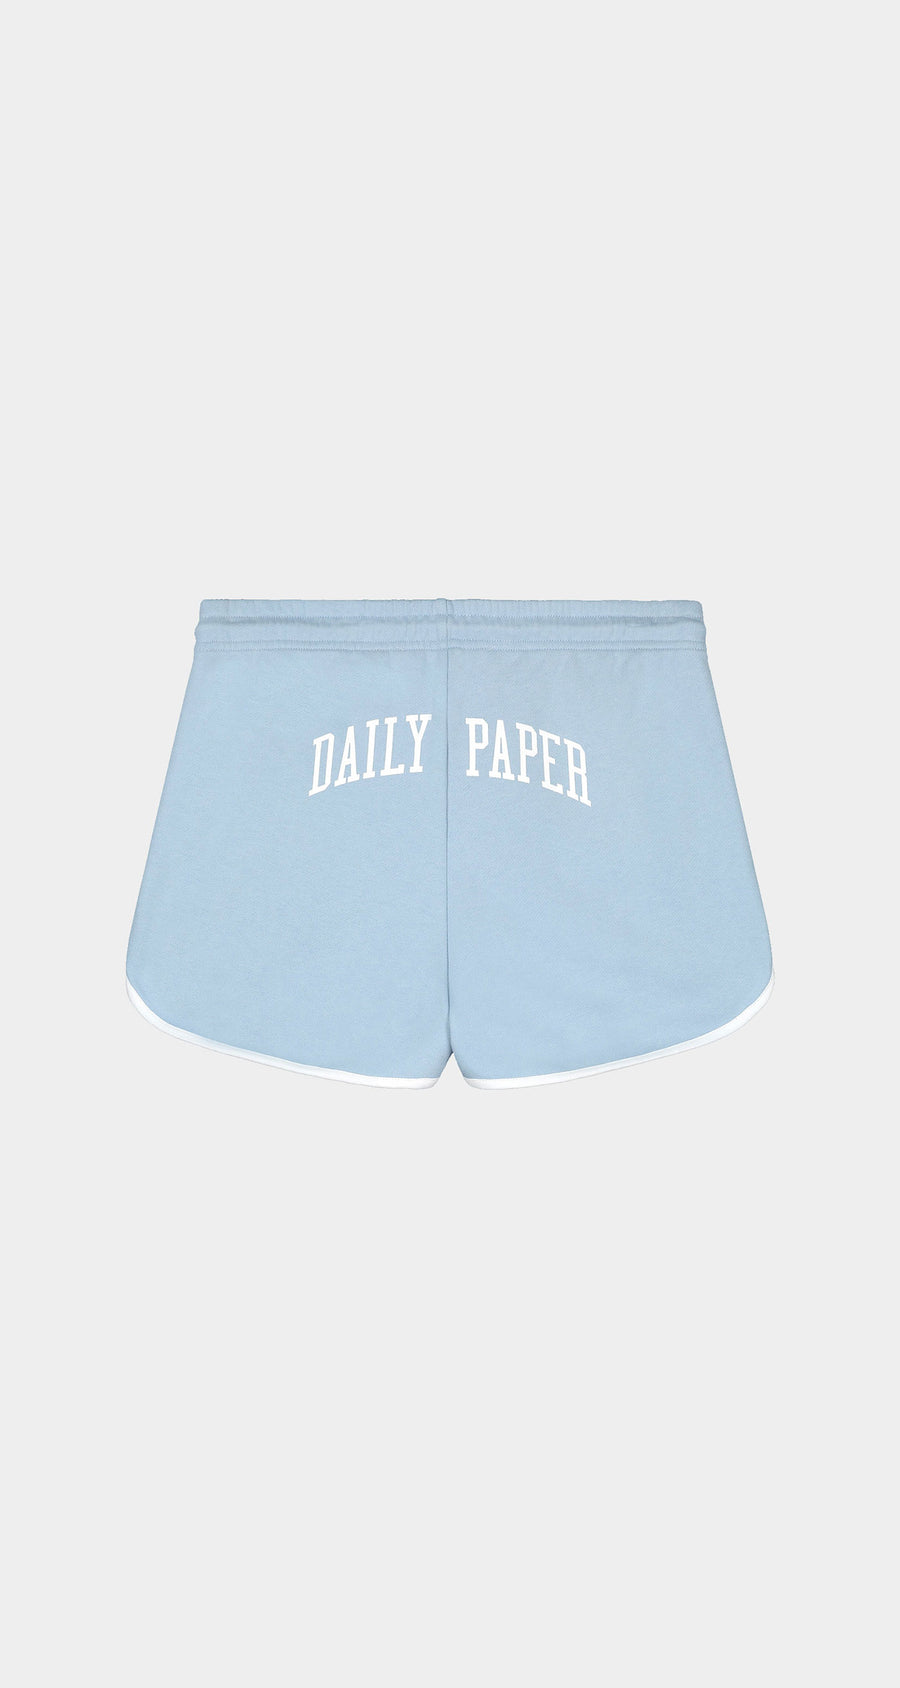 Daily Paper - Chambray Blue Rehani Shorts - Women Front